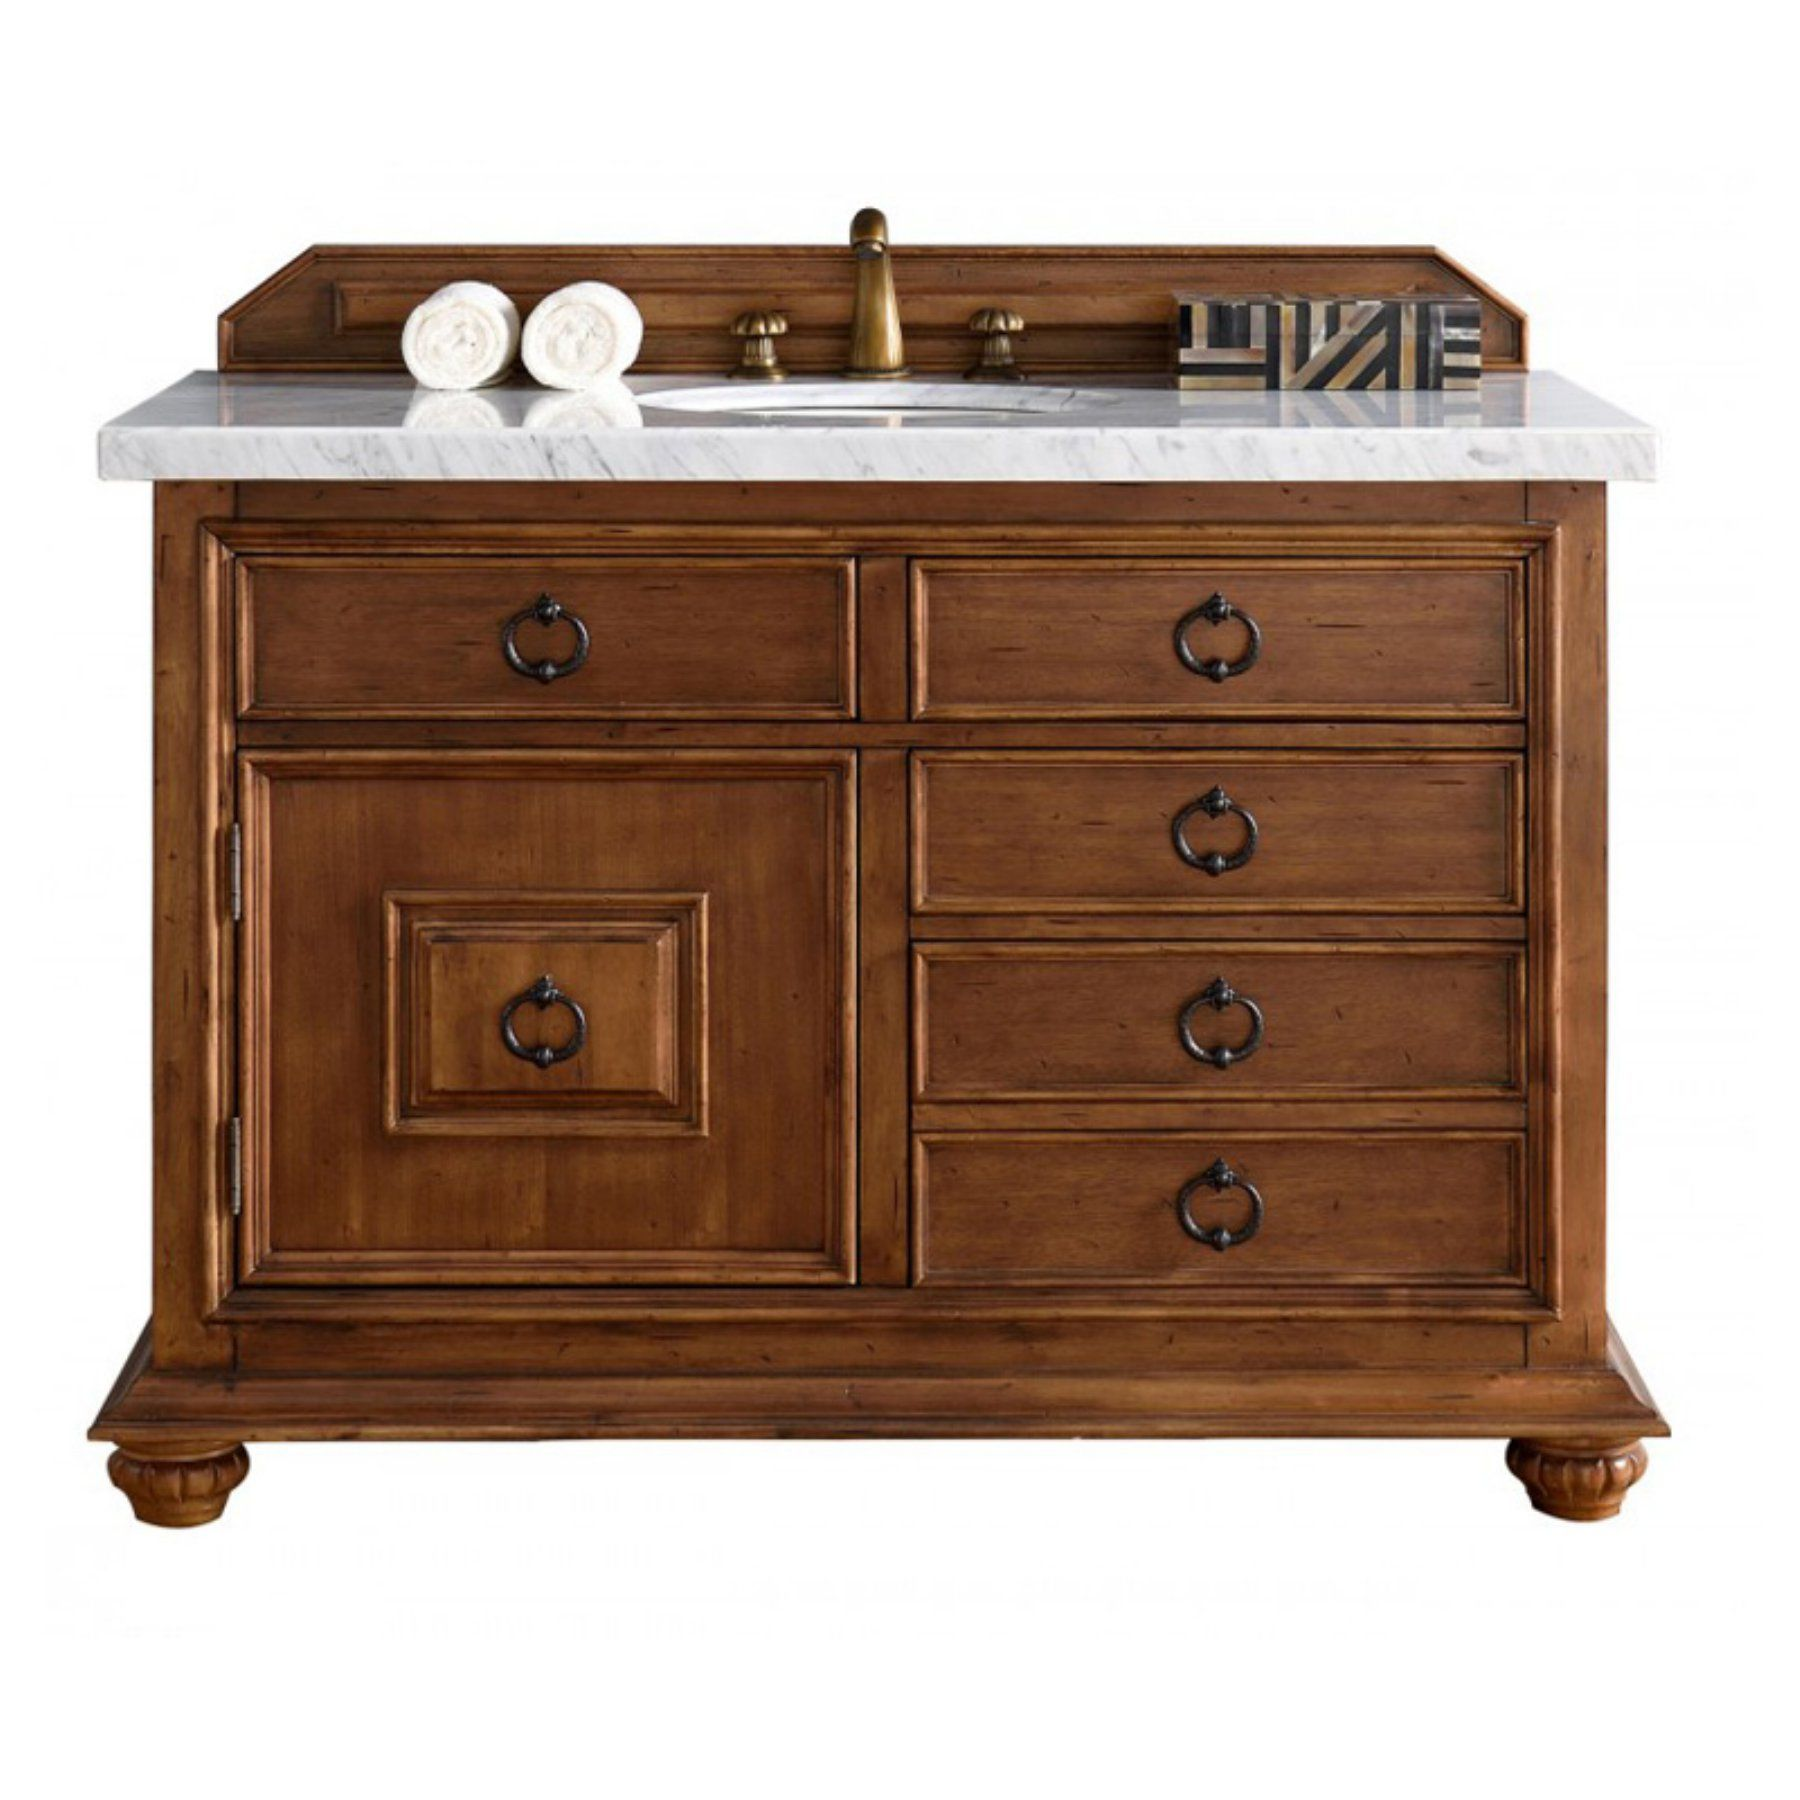 single home of vanities image beds sink sofas vanity bathroom ideas and depot cabinets